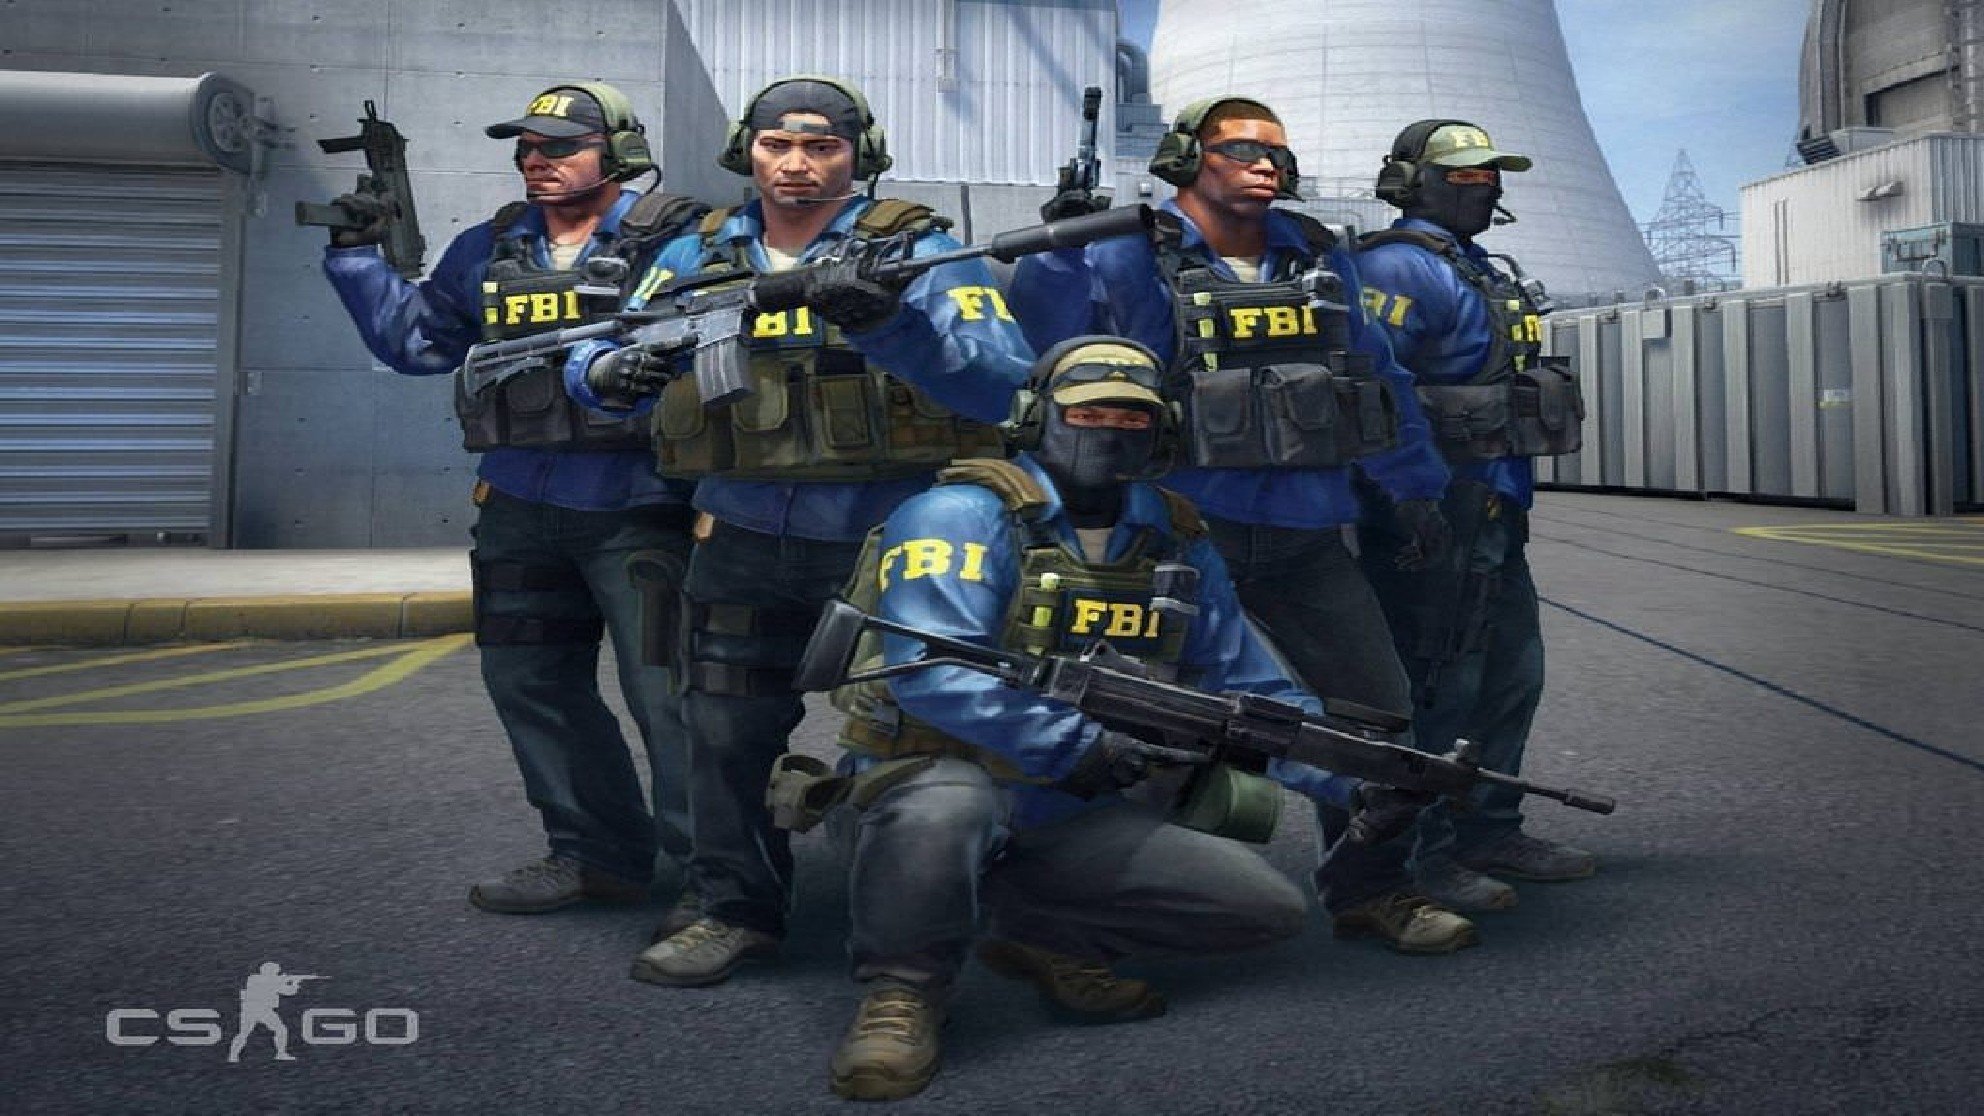 CS:GO update brings new FBI models on Nuke and a MP5 in active mode